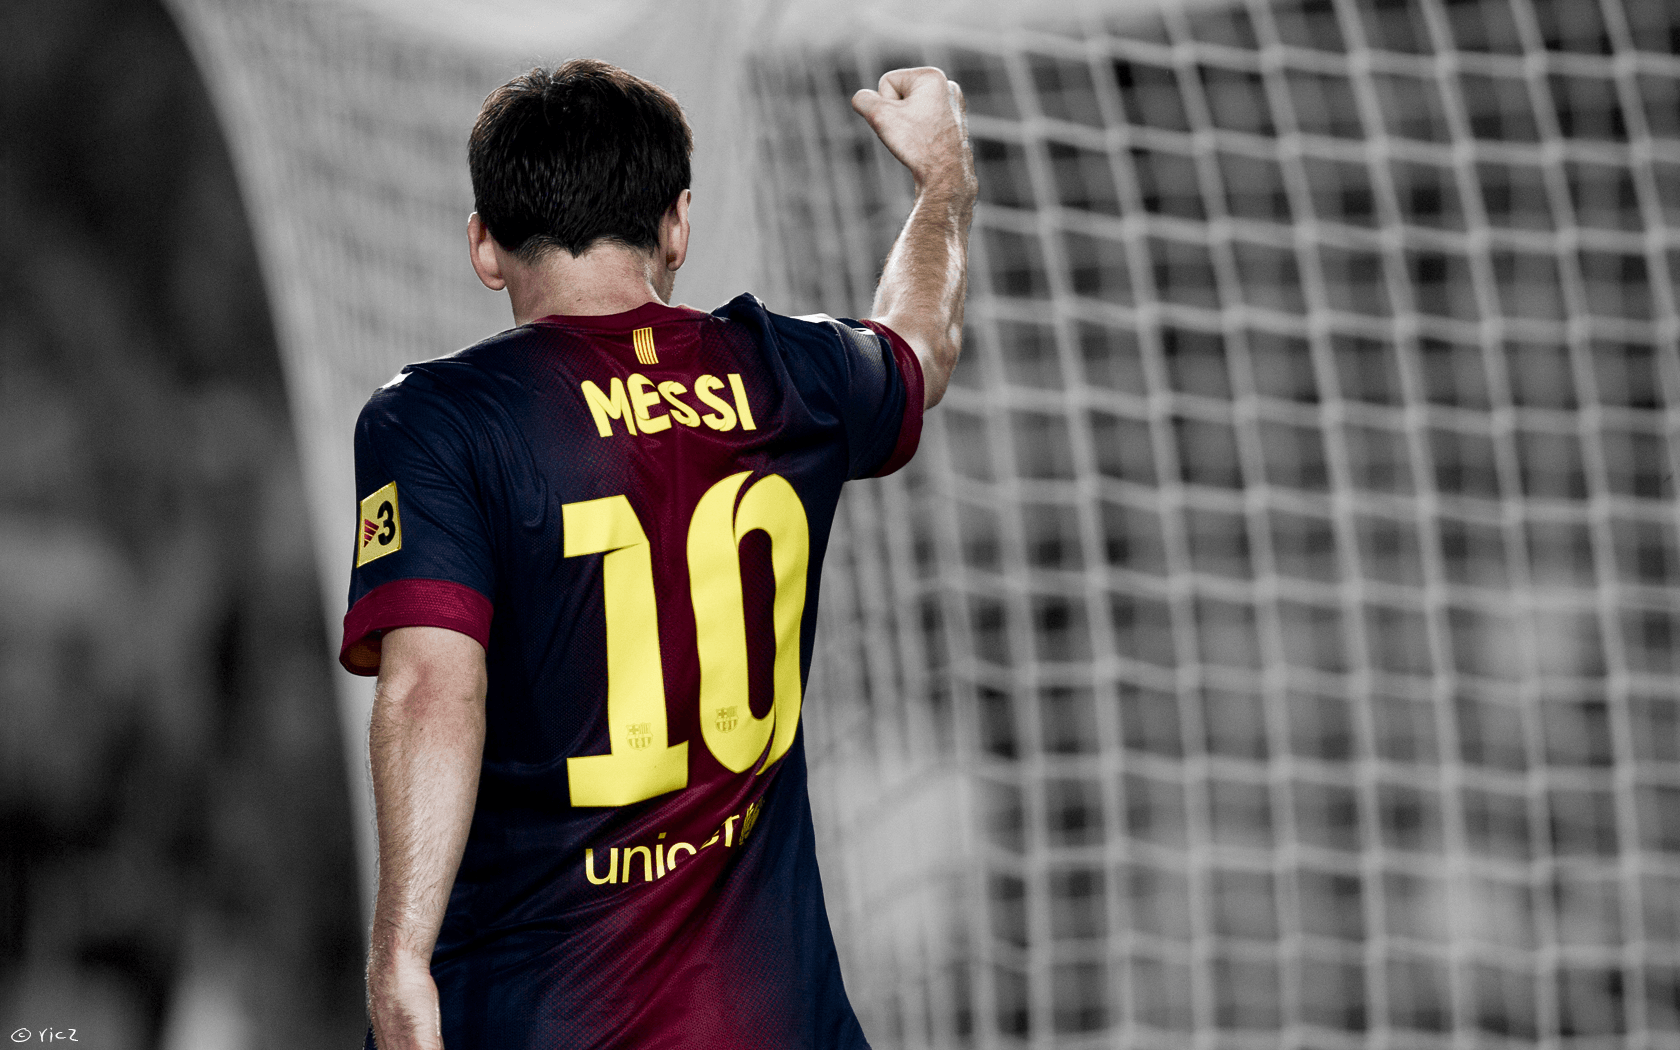 Creative Messi HD Wallpapers - #WPOUX31 SH.VM